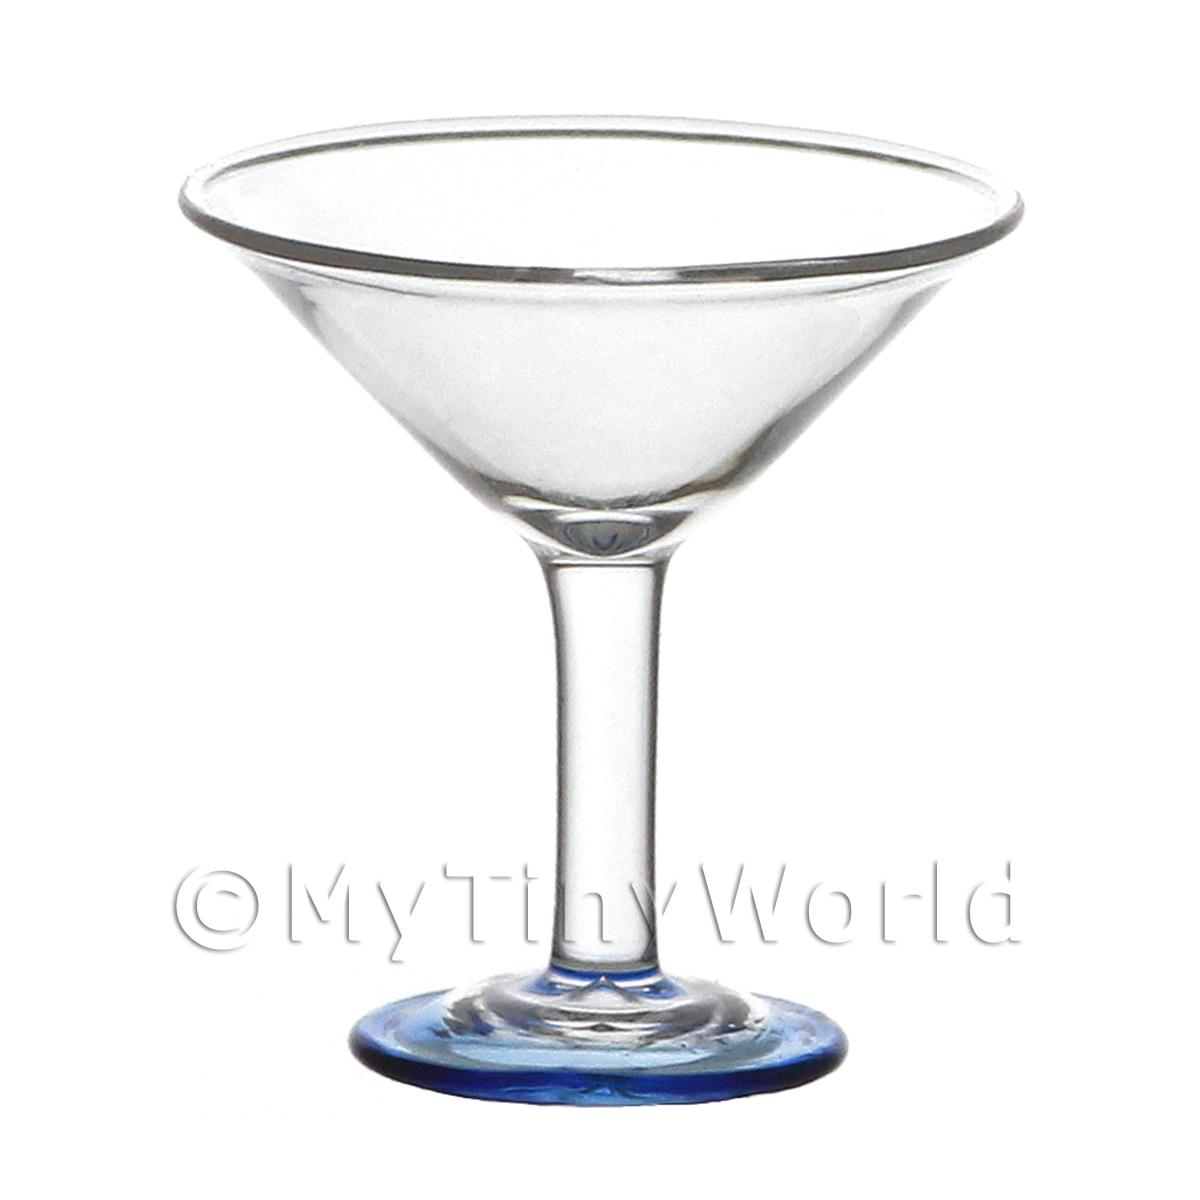 Dolls House Miniature Handmade Classic Blue Based Cocktail Glass